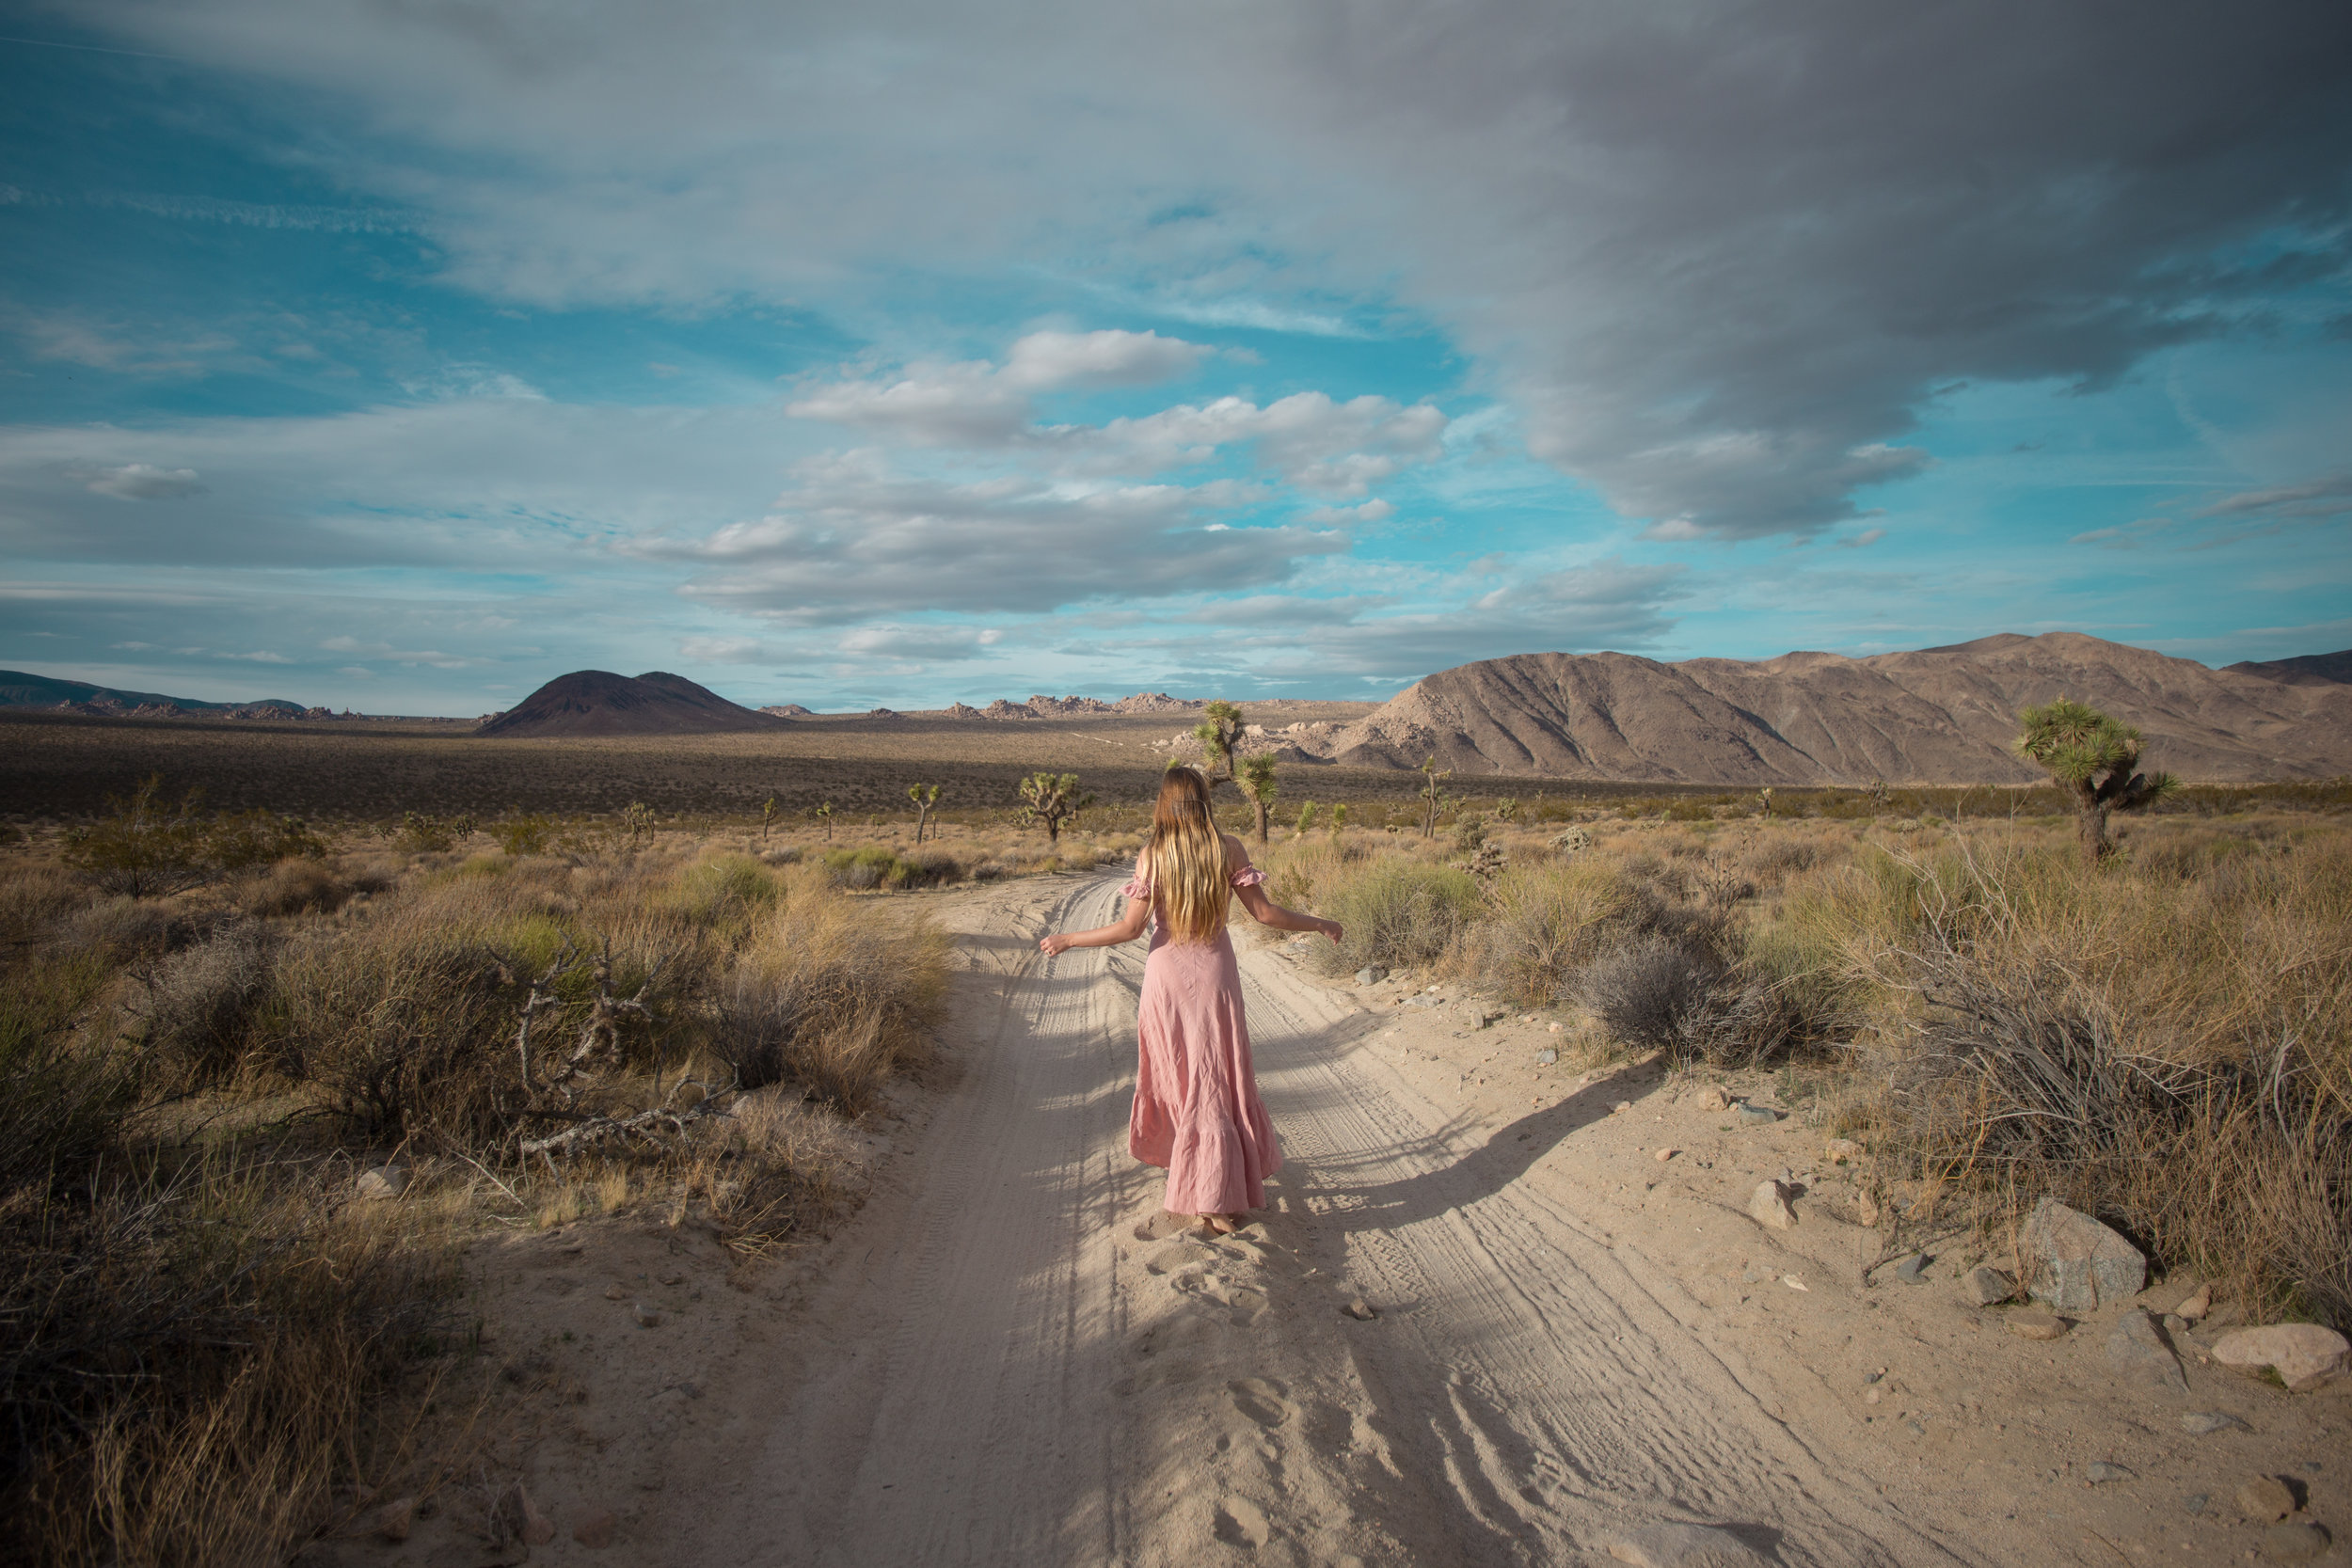 AstroBandit_JordanRose_Auguste_The_Label_LightPink_Spring_2018_Fashion_Maxi_Dress_Joshua_Tree_Storm_5.jpg